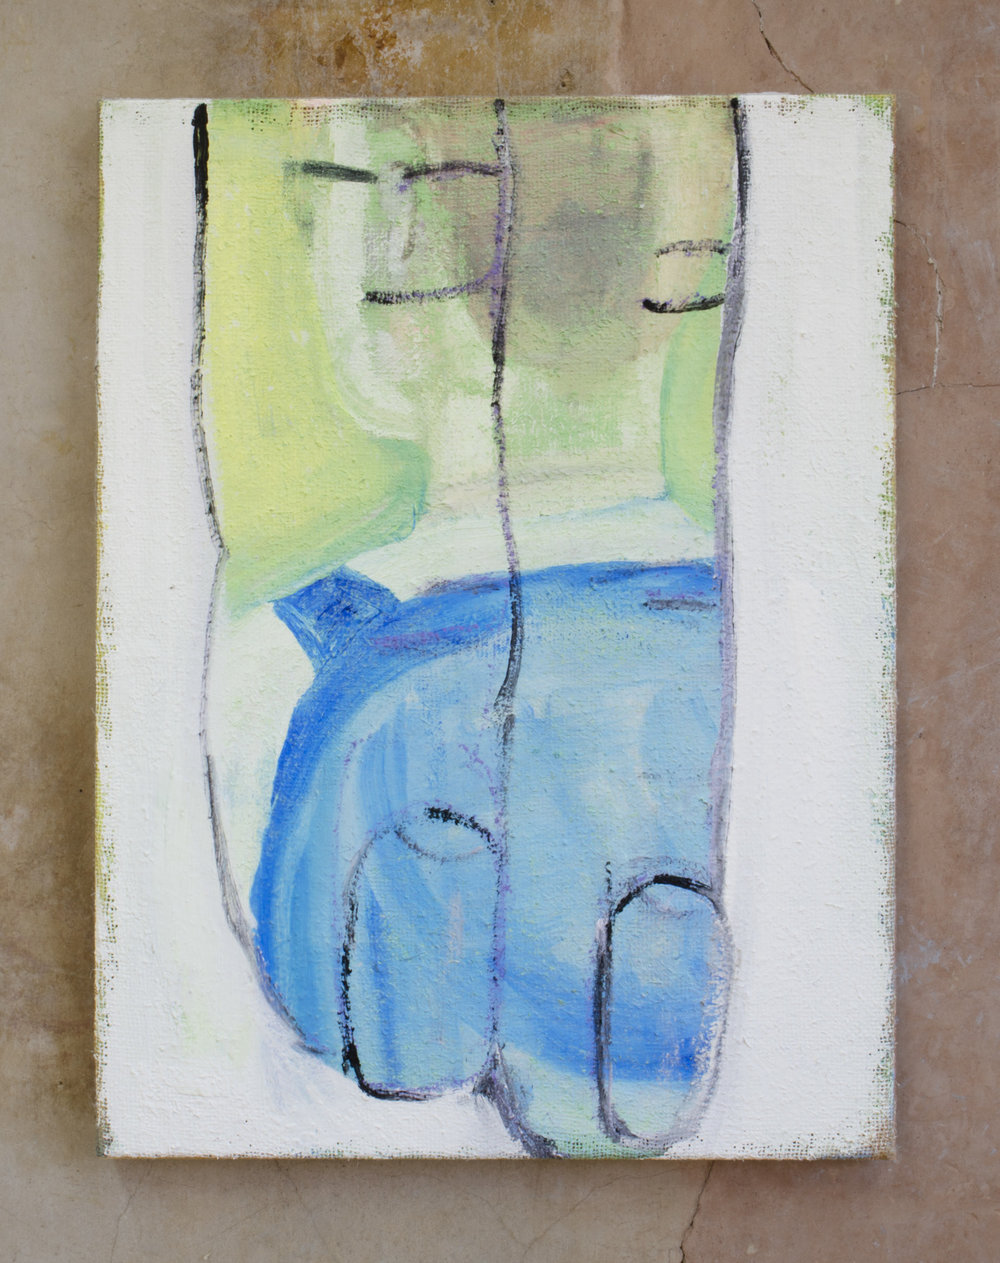 Backpack , 2015, 61 x 46 cm, acrylic, oil, emulsion, plaster and chalk on hessian.